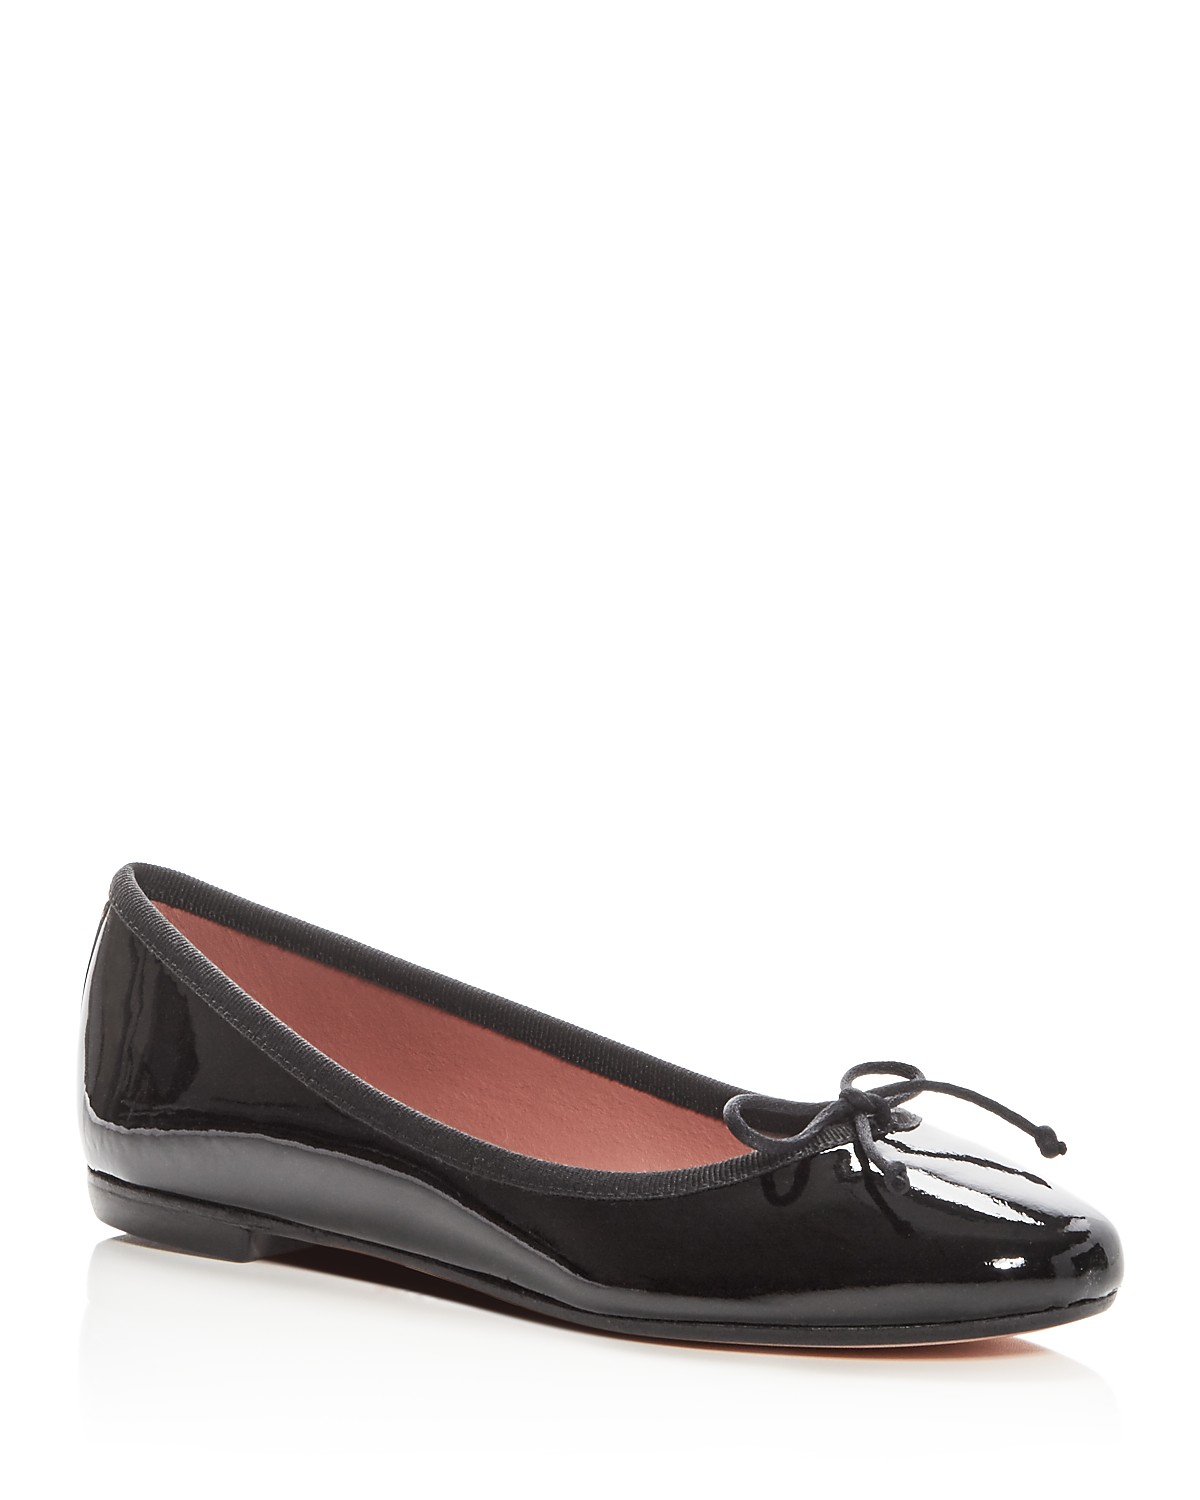 Bloomingdale's Women's Kacey Italian Patent Leather Ballet Flats - 100% Exclusive fYAH4OWhb